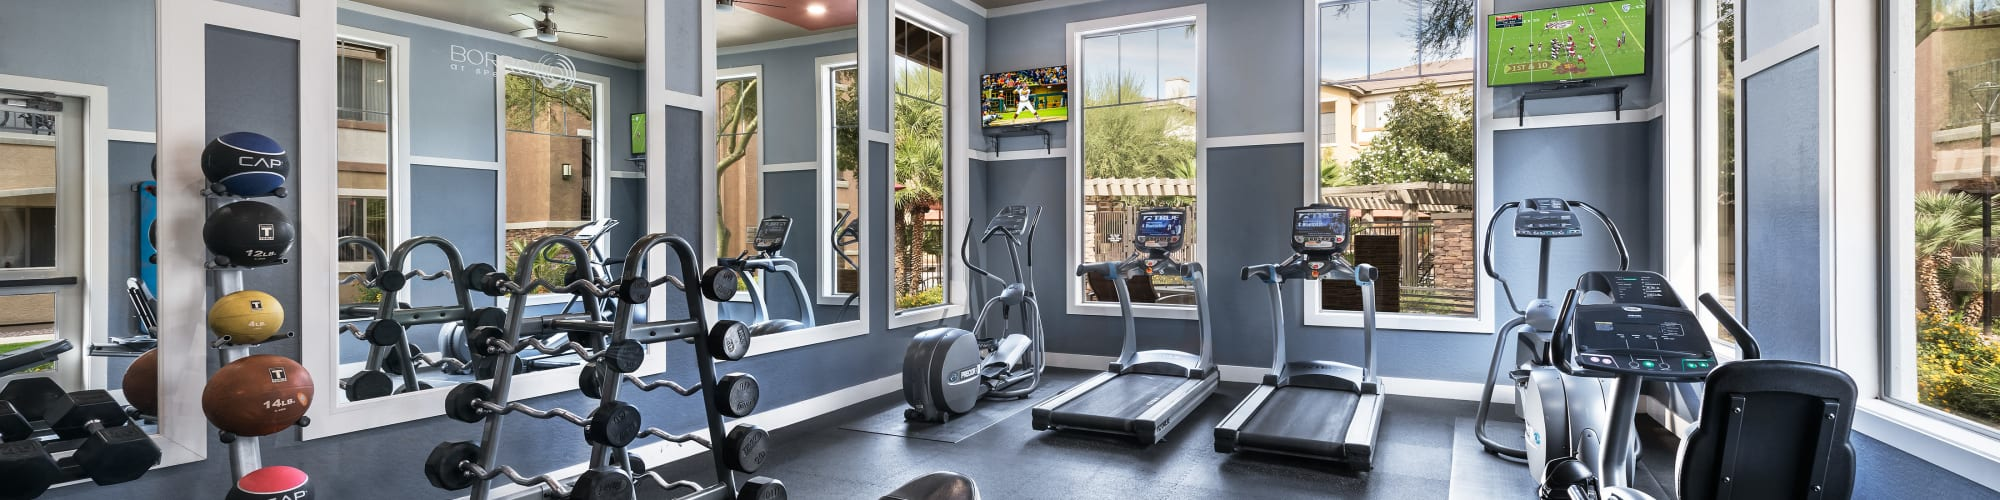 Amenities at Borrego at Spectrum in Gilbert, Arizona